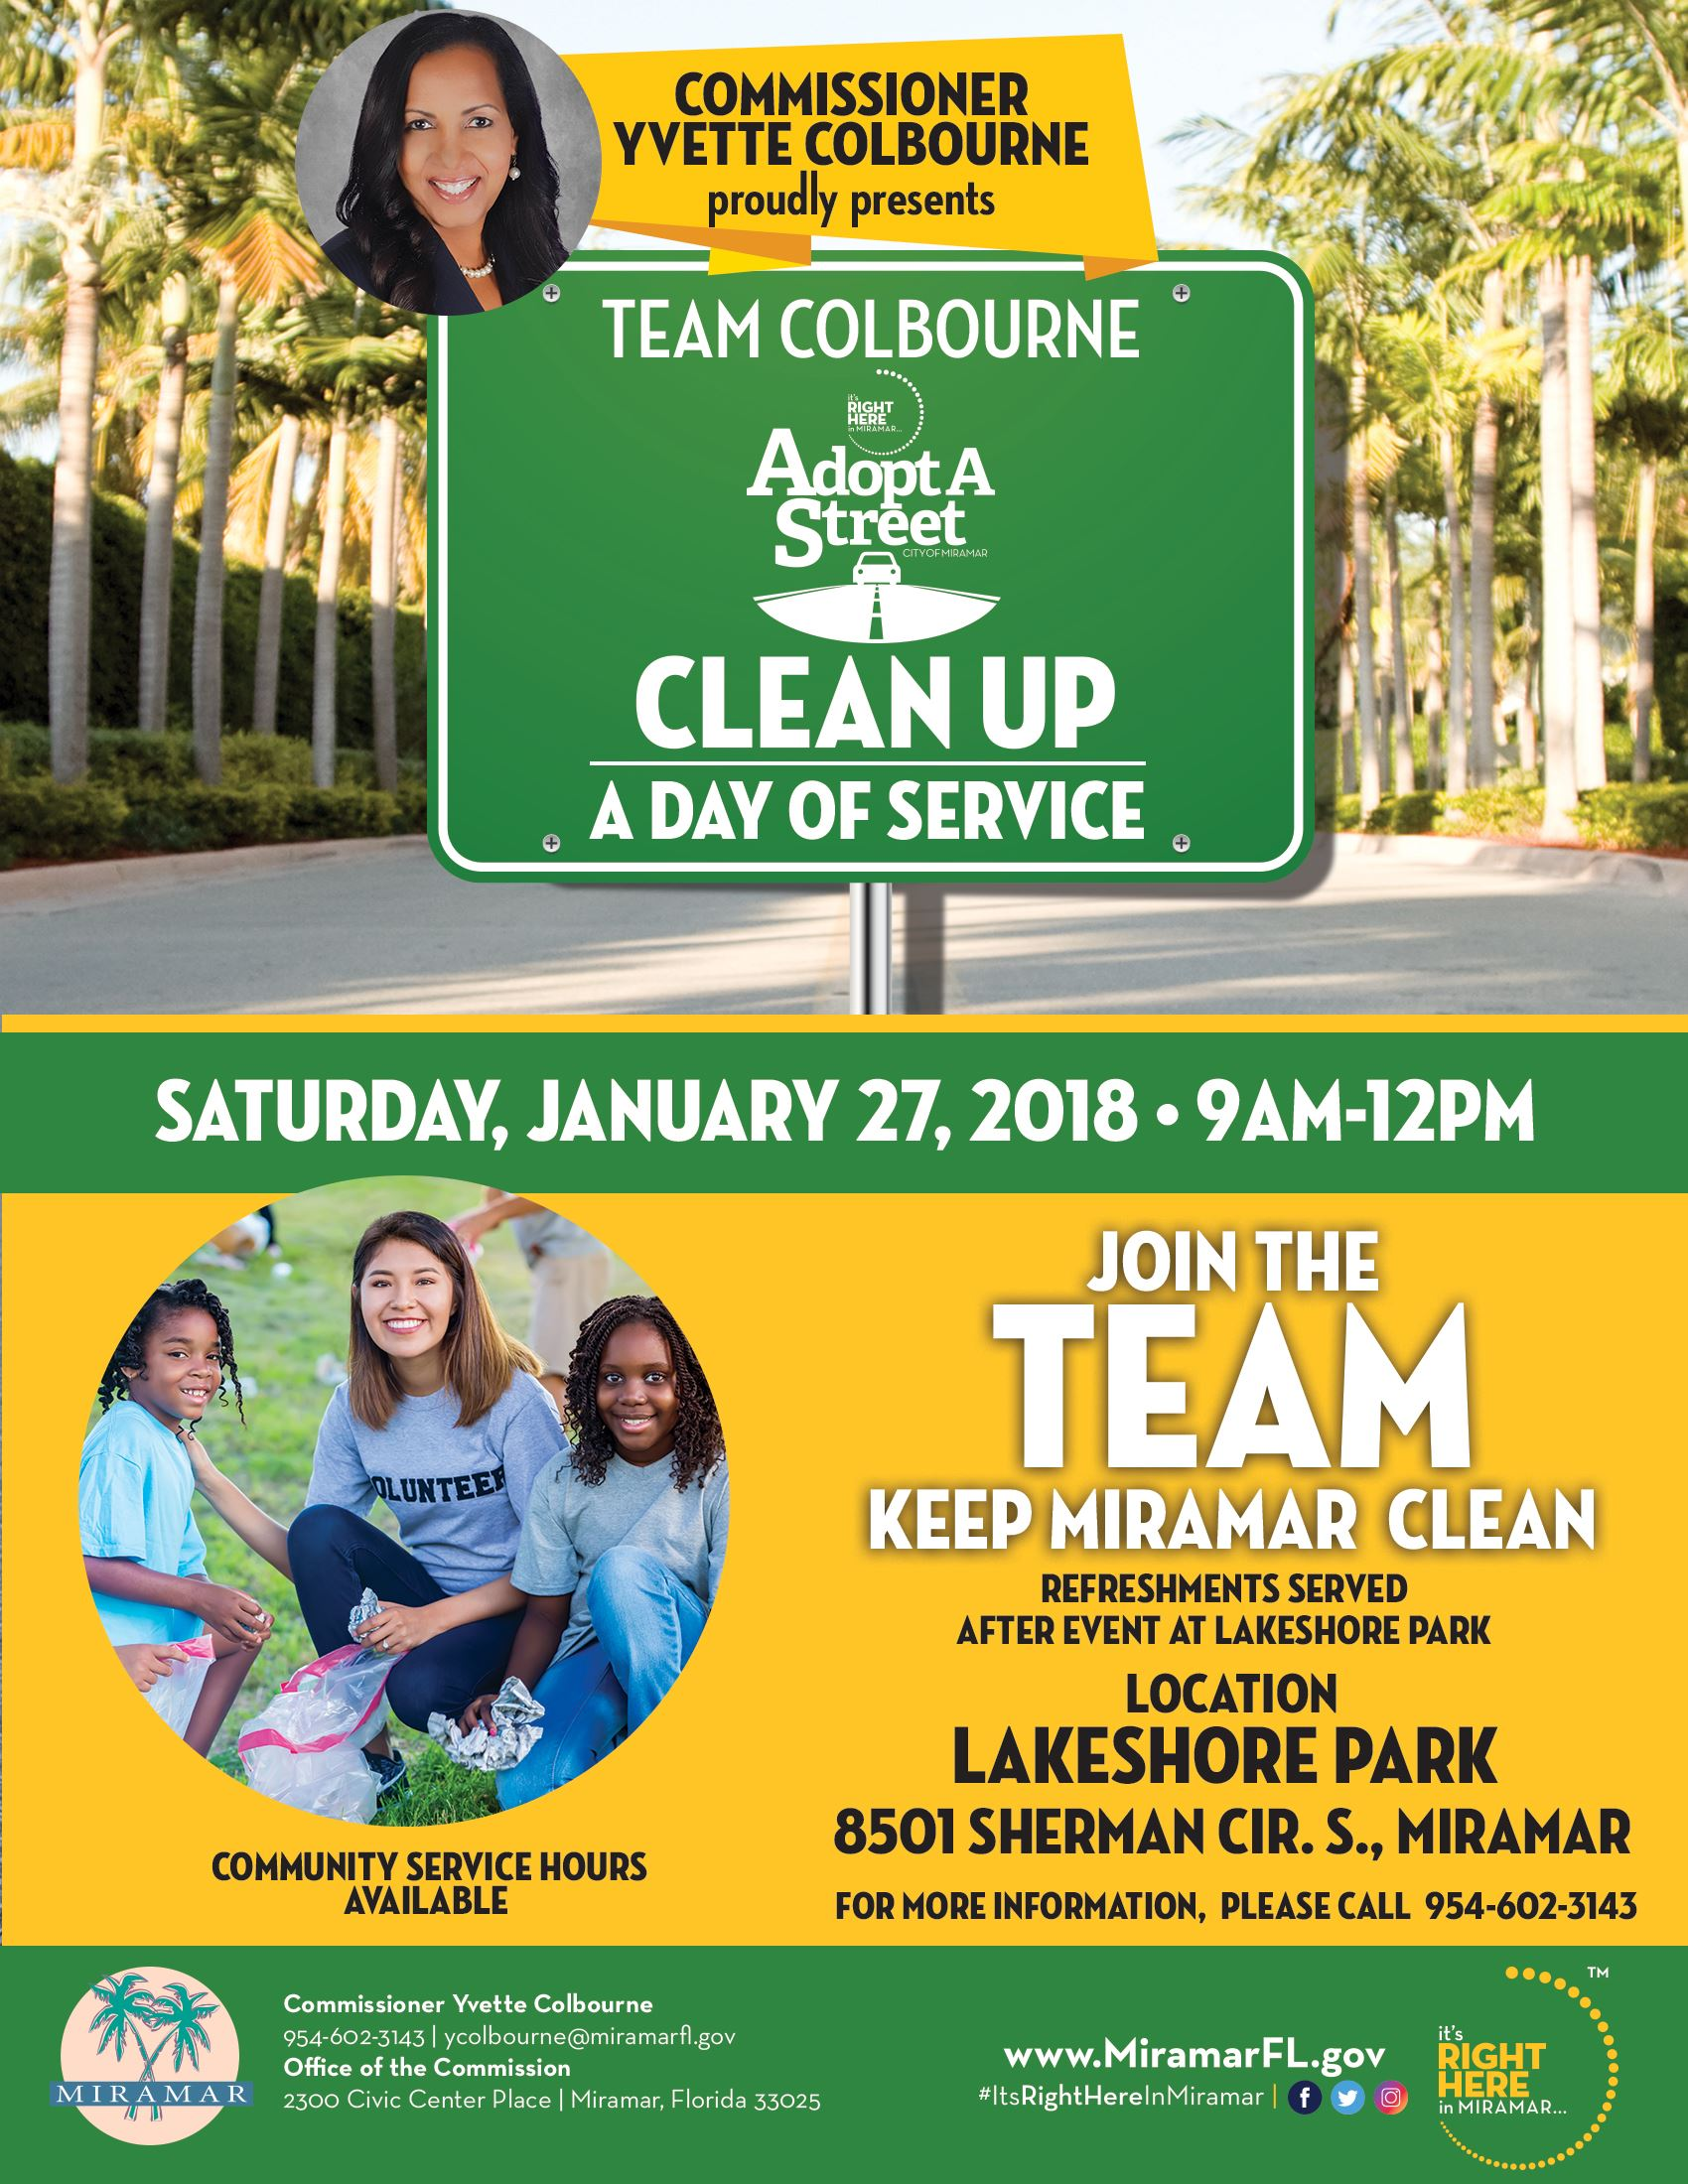 Commissioner Colbourne A Day of Service : Adopt A Street